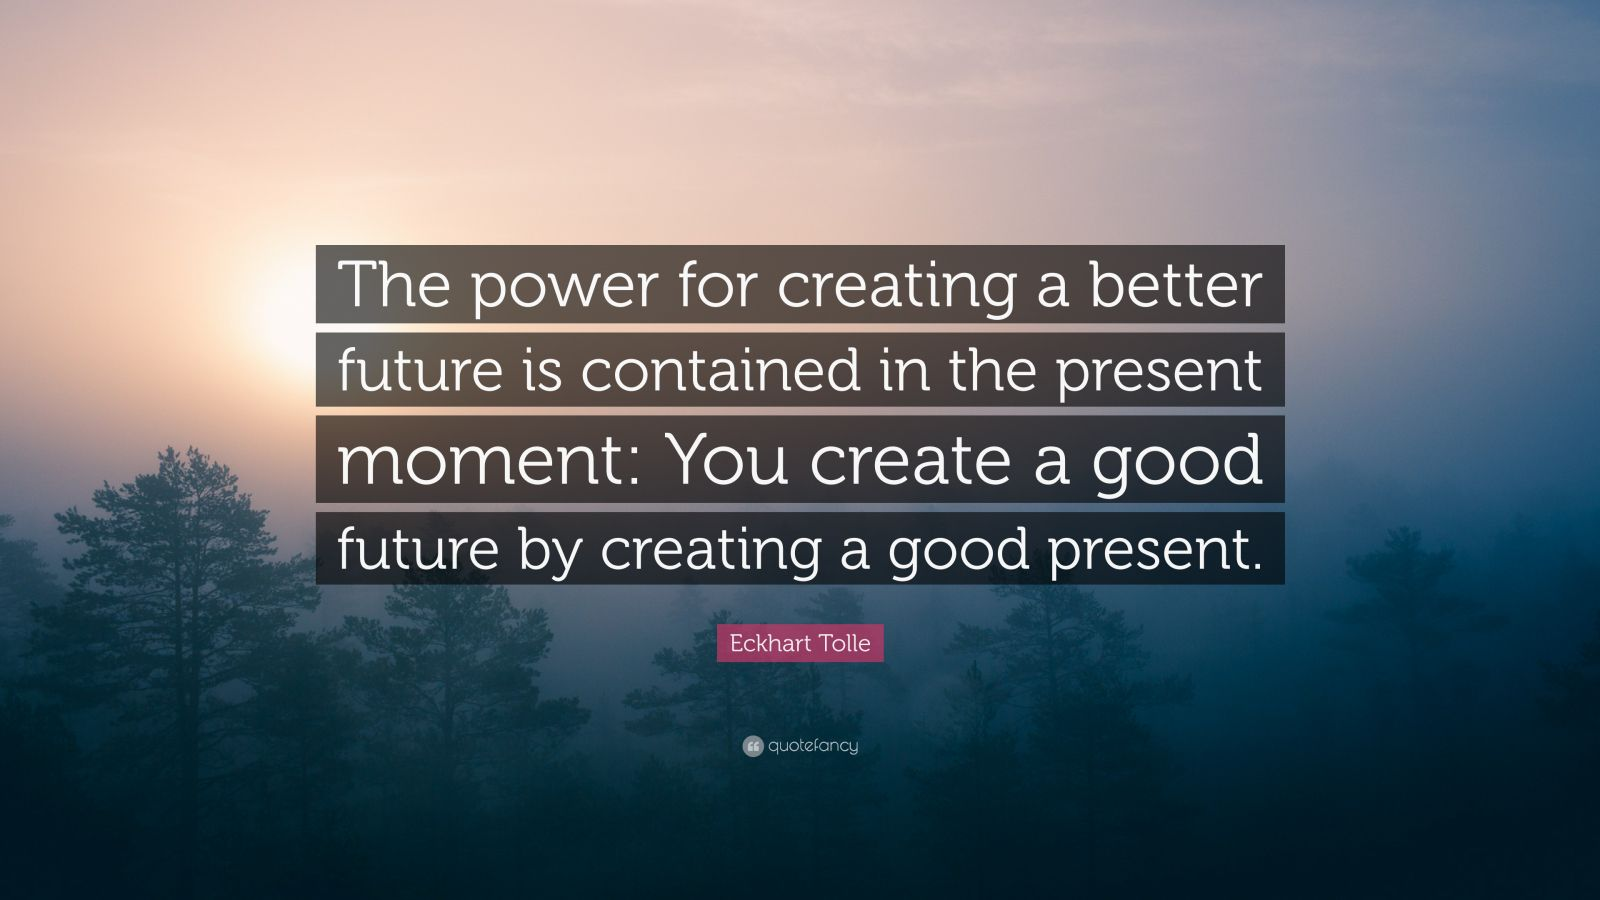 """Eckhart Tolle Quote: """"The power for creating a better future is contained in the present moment: You create a good future by creating a good present."""""""